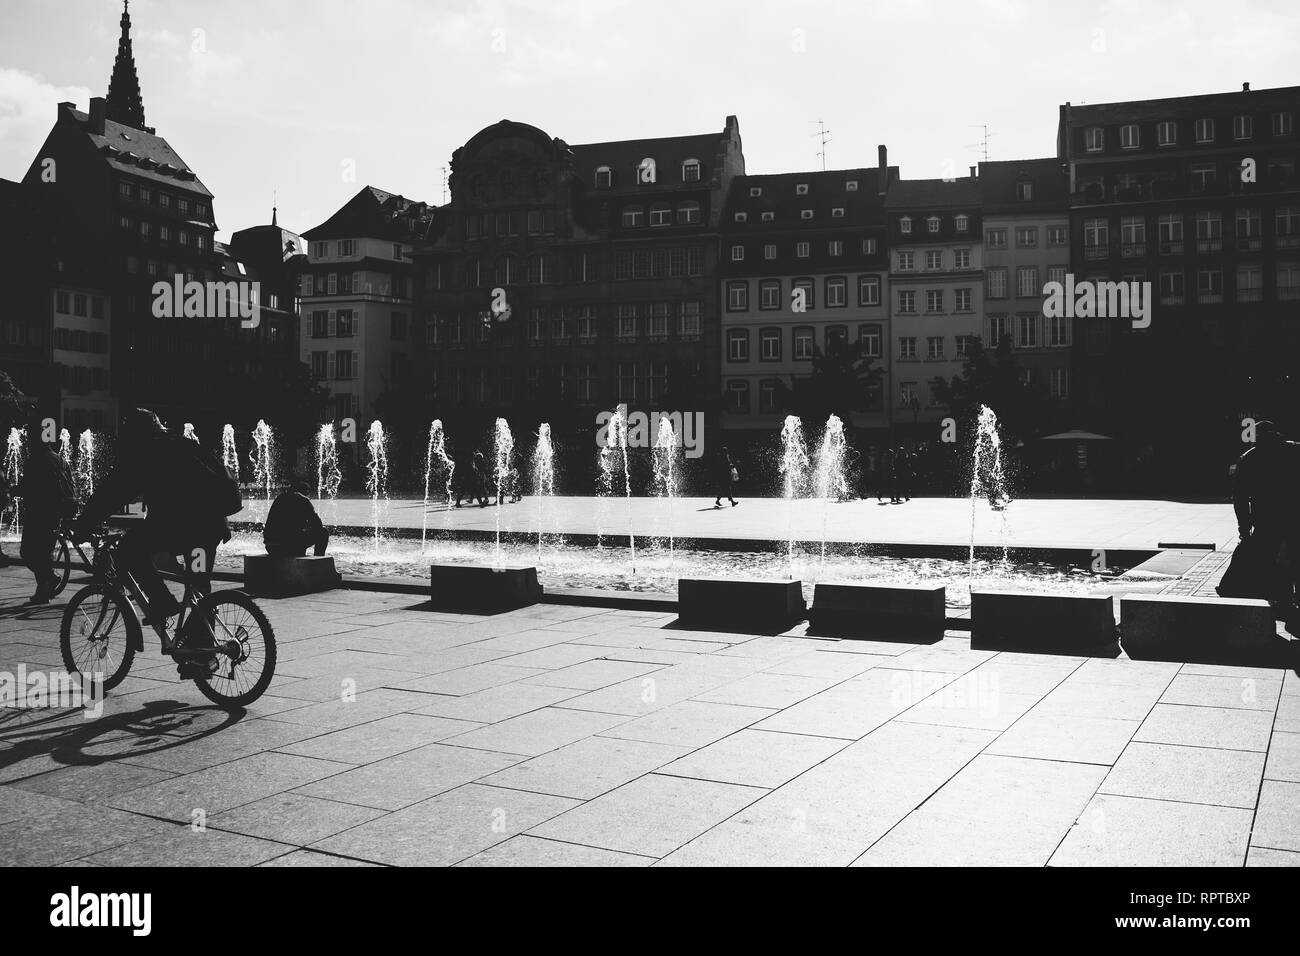 STRASBOURG, FRANCE - OCT 26, 2018: Strasbourg Place Kleber on a warm summer day with hundreds of people tourists and locals walking in the morning - black and white - Stock Image